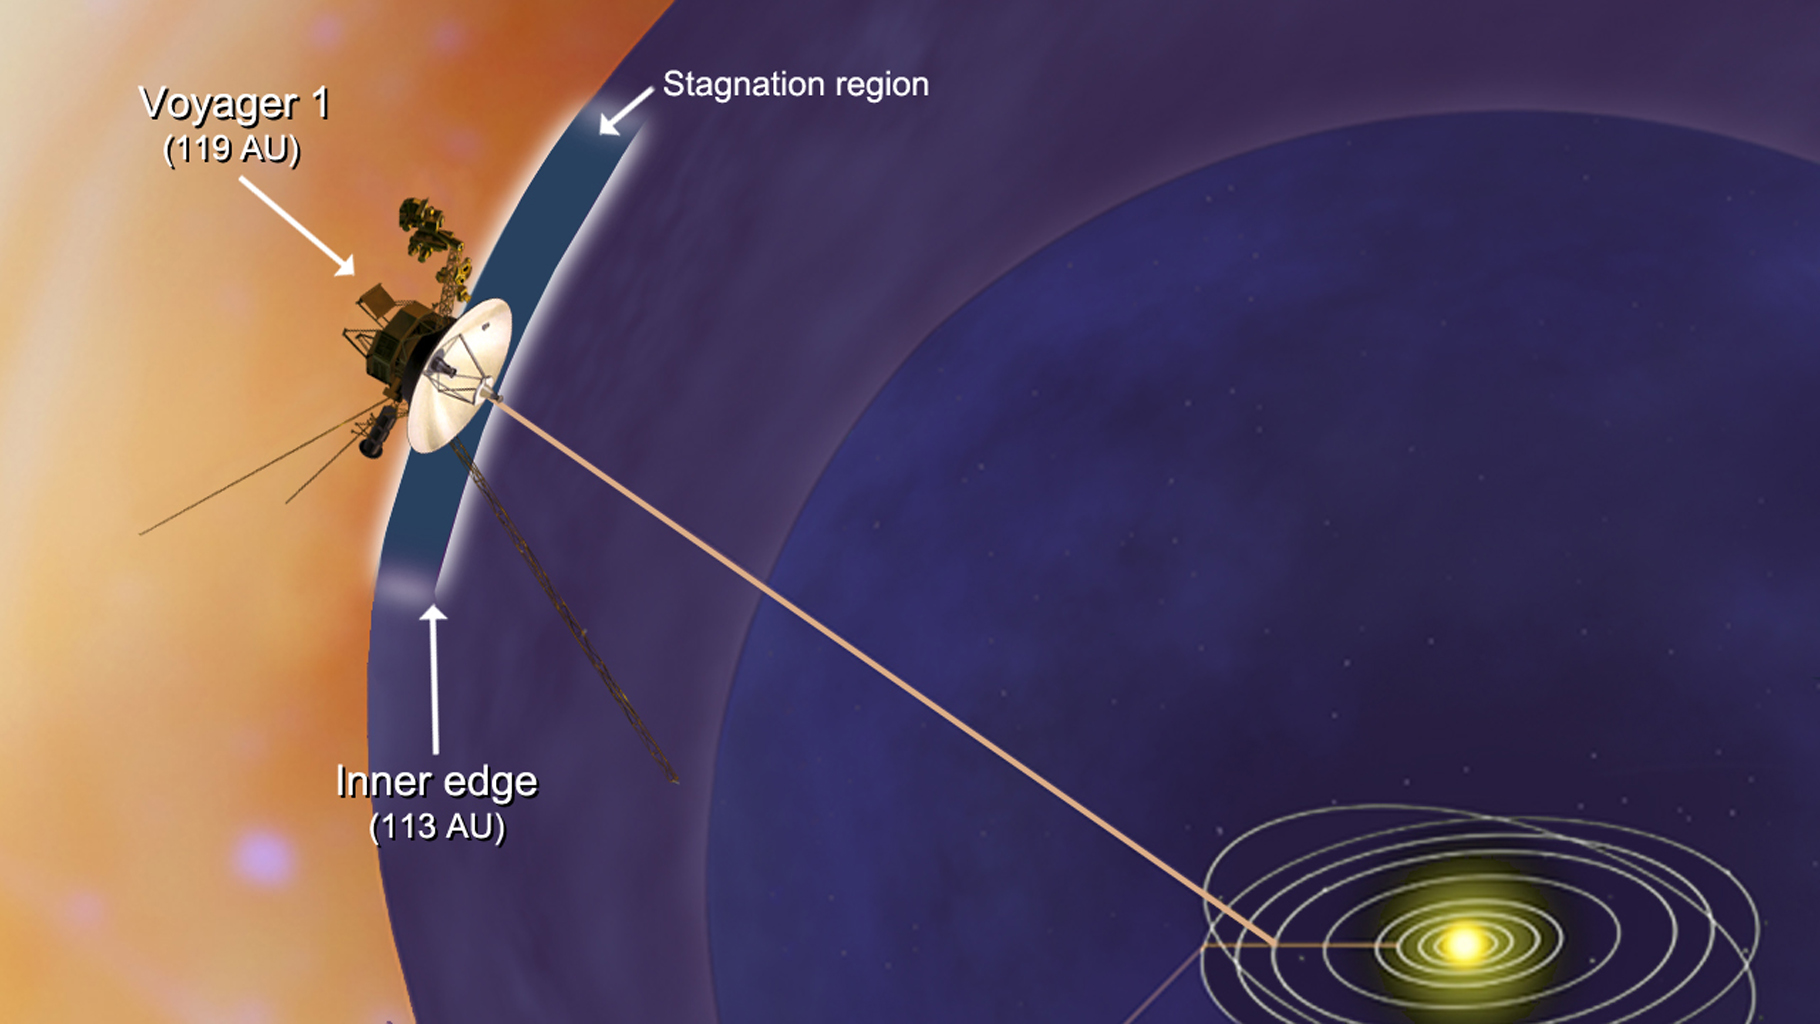 NASA's Voyager 1 spacecraft has entered a new region between our solar system and interstellar space, which scientists are calling the stagnation region as depicted in this artist rendering.